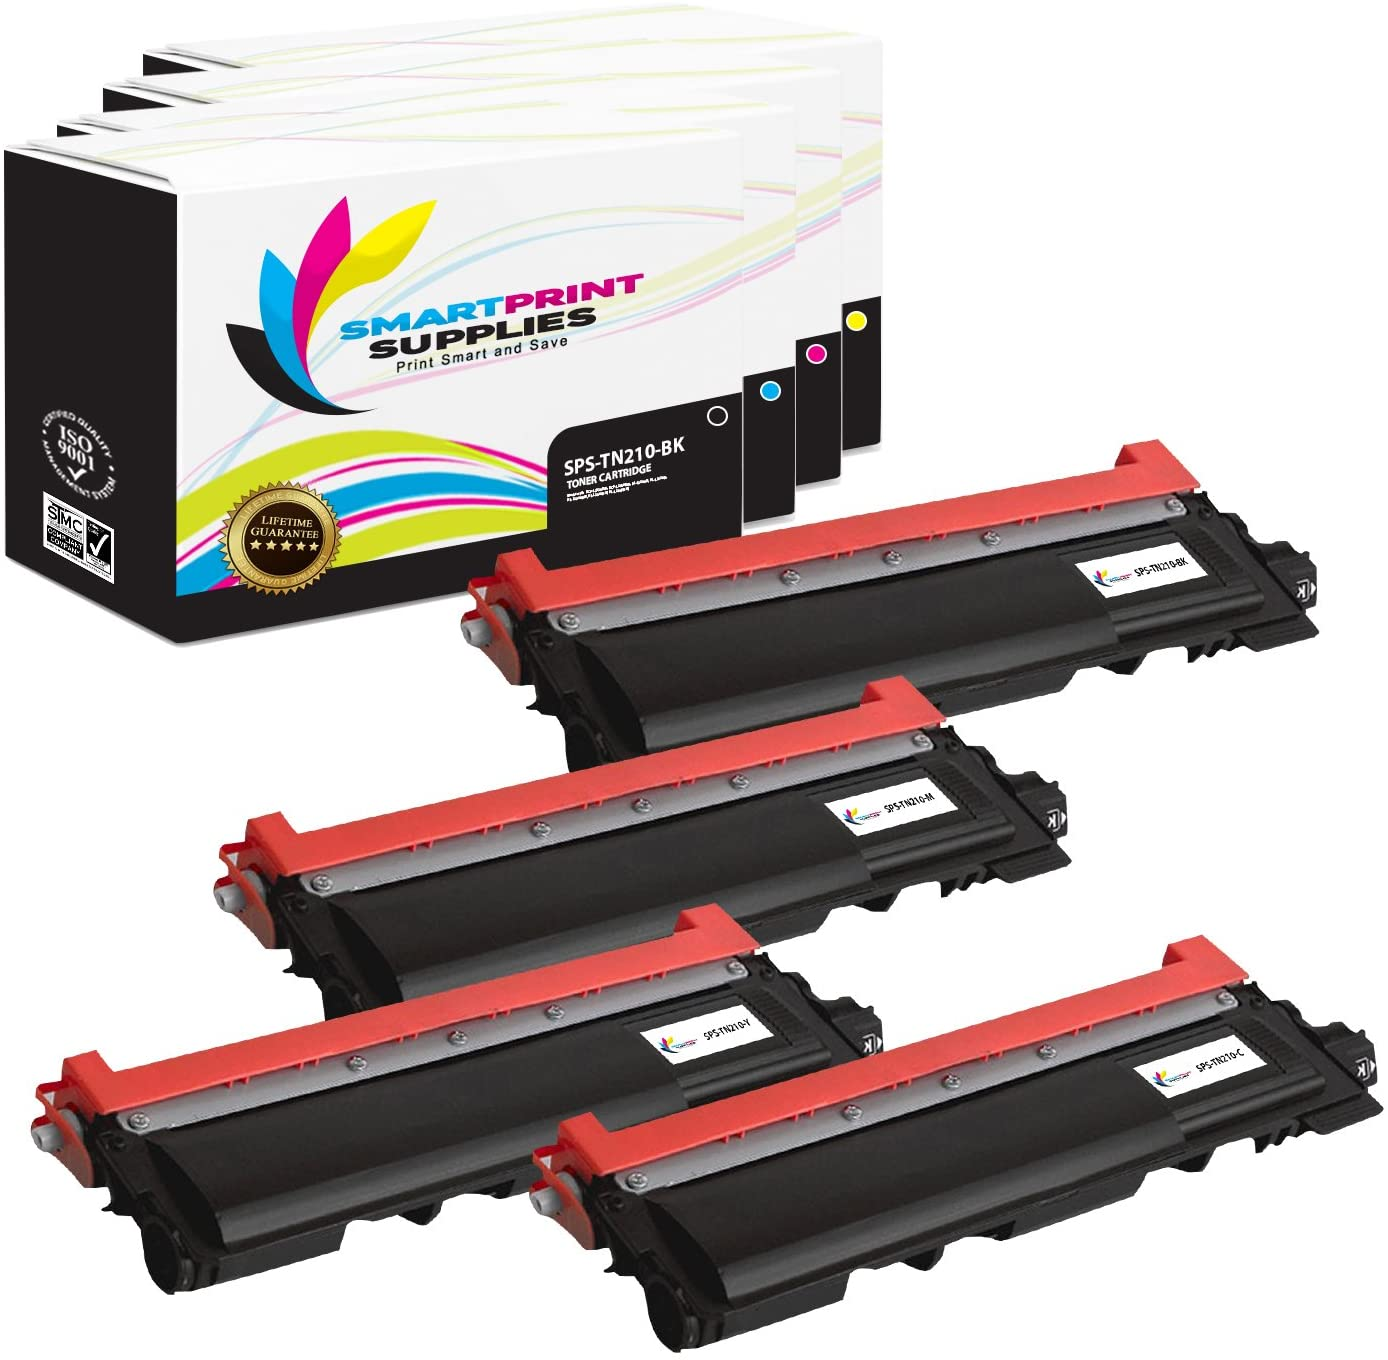 Smart Print Supplies Compatible TN-210 TN210 TN210BK TN210C TN210M TN210Y Toner Cartridge Replacement for Brother HL-3040CN 3070CW, MFC-9010CN 9120CNW 9320CW Printers (BK, C, M, Y) - 4 Pack